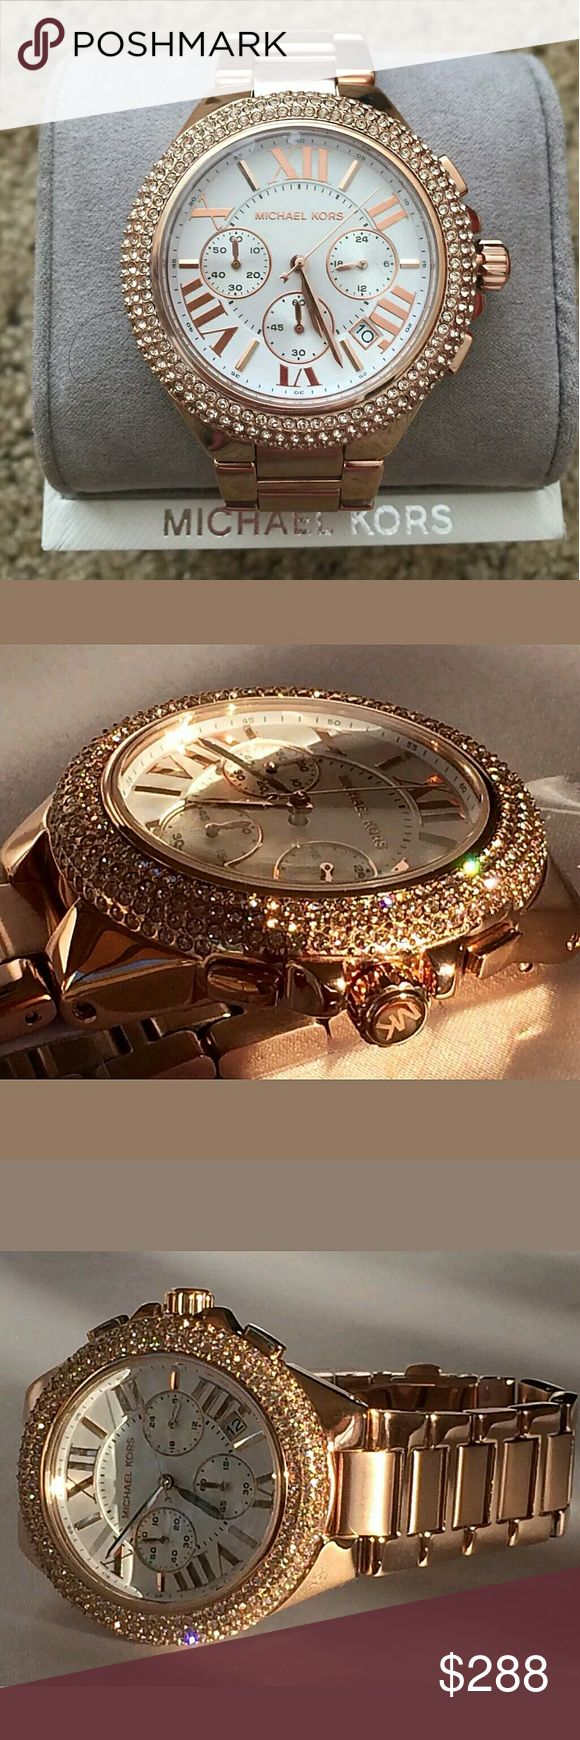 MICHAEL KORS Rose Camille Swarovski Crystal watch MICHAEL KORS Rose Gold Swarovski Crystal Glitz Chronograph Watch.  FIRM PRICE FIRM PRICE FIRM PRICE  $288.00 . AUTHENTIC WATCH  . AUTHENTIC BOX  . AUTHENTIC MANUAL   SHIPPING  PLEASE ALLOW FEW BUSINESS DAYS FOR ME TO SHIPPED IT OFF.I HAVE TO GET IT FROM MY STORE.    THANK YOU FOR YOUR UNDERSTANDING. Michael Kors Accessories Watches